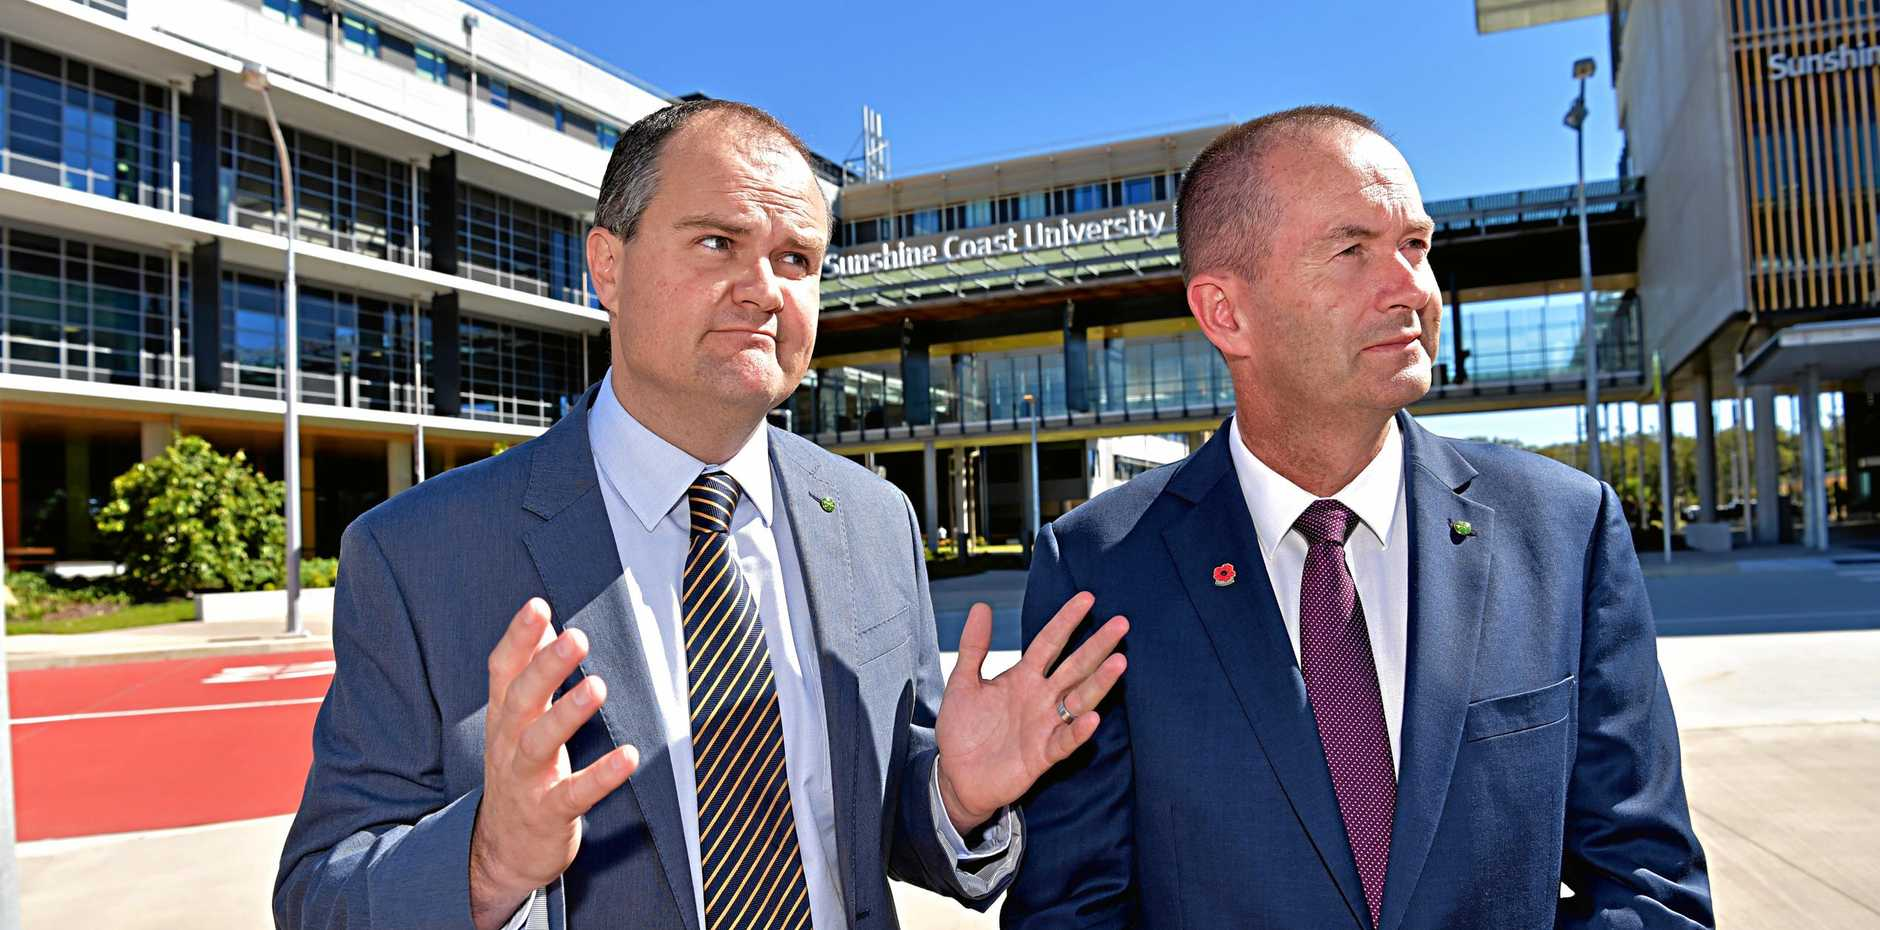 WANTED PROTECTIONS: Member for Fisher Andrew Wallace (right) and Member for Fairfax Ted O'Brien spoke after the historic passing of same sex marriage bill.